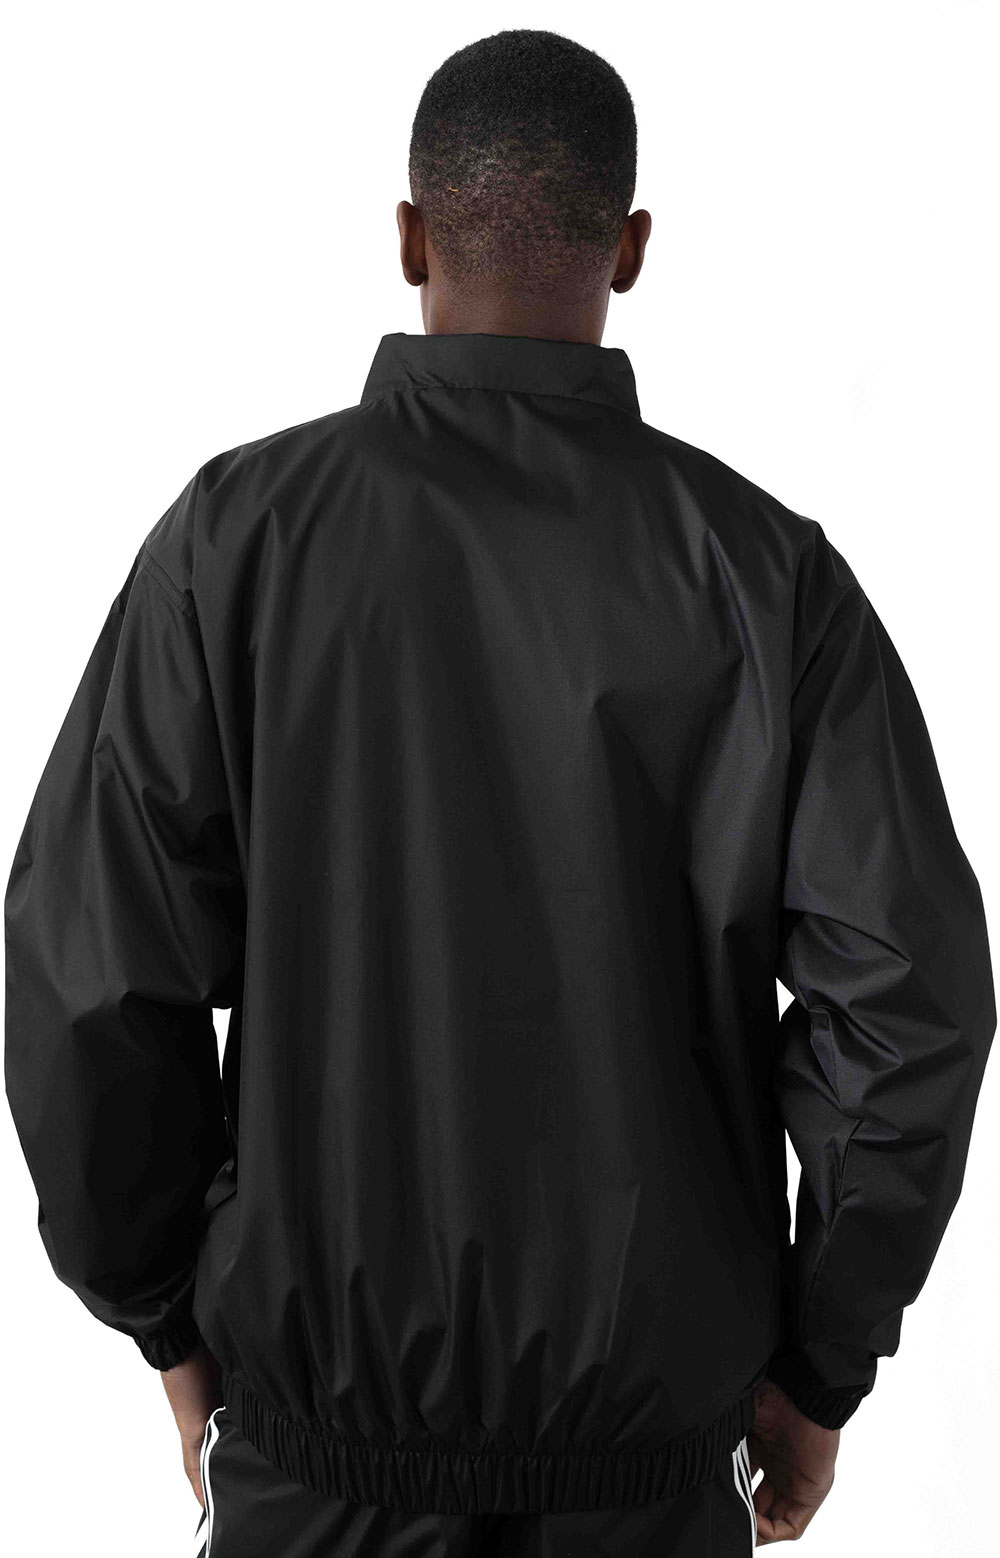 Firebird Jacket - Black/White 3